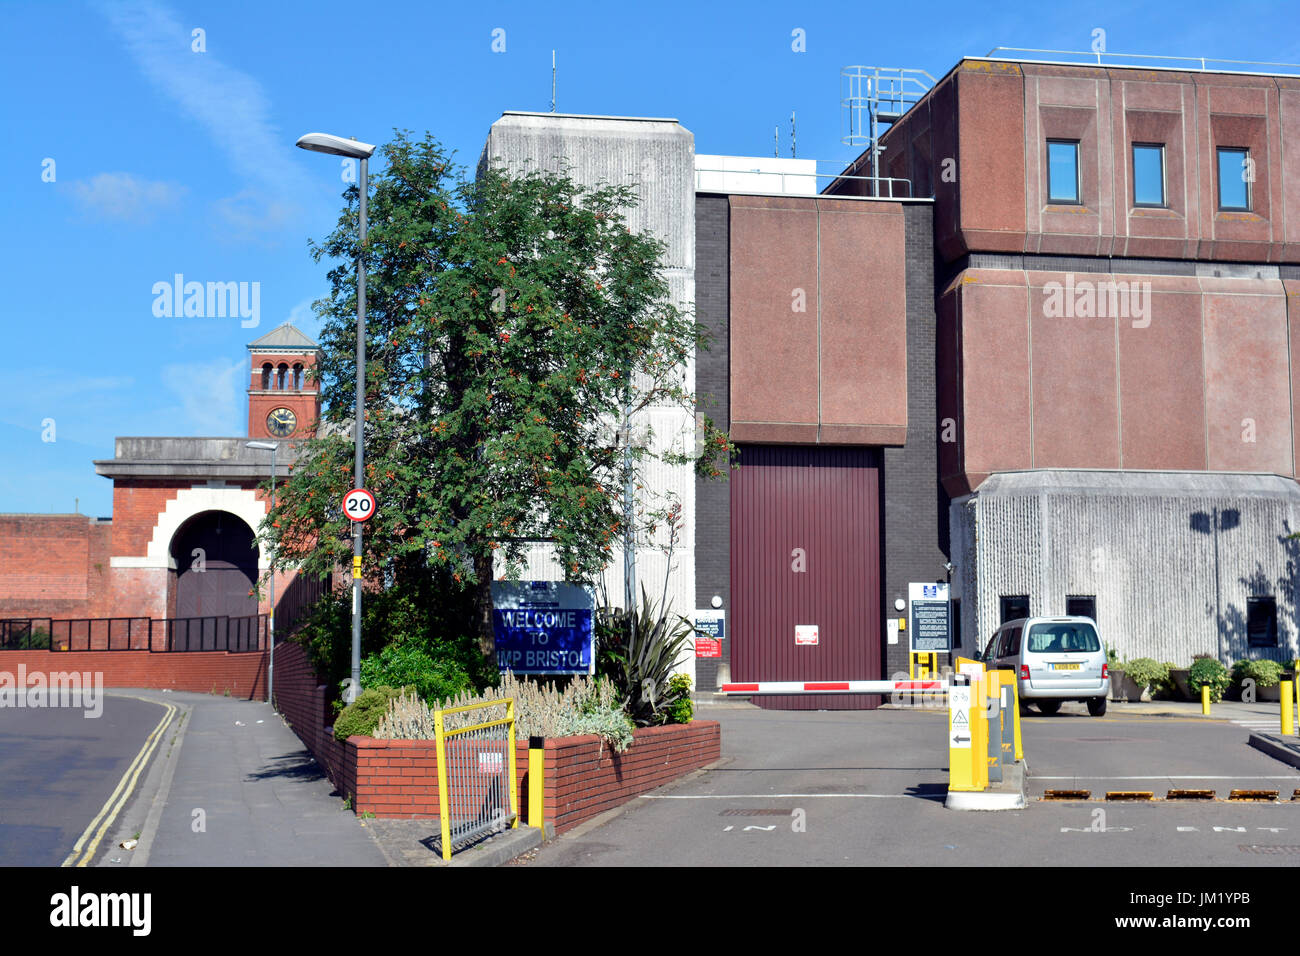 Bristol, UK. 25th July, 2017. Breaking..Total chaos at Horfield Prison in Bristol, outbreak of cockroaches, drugs, - Stock Image